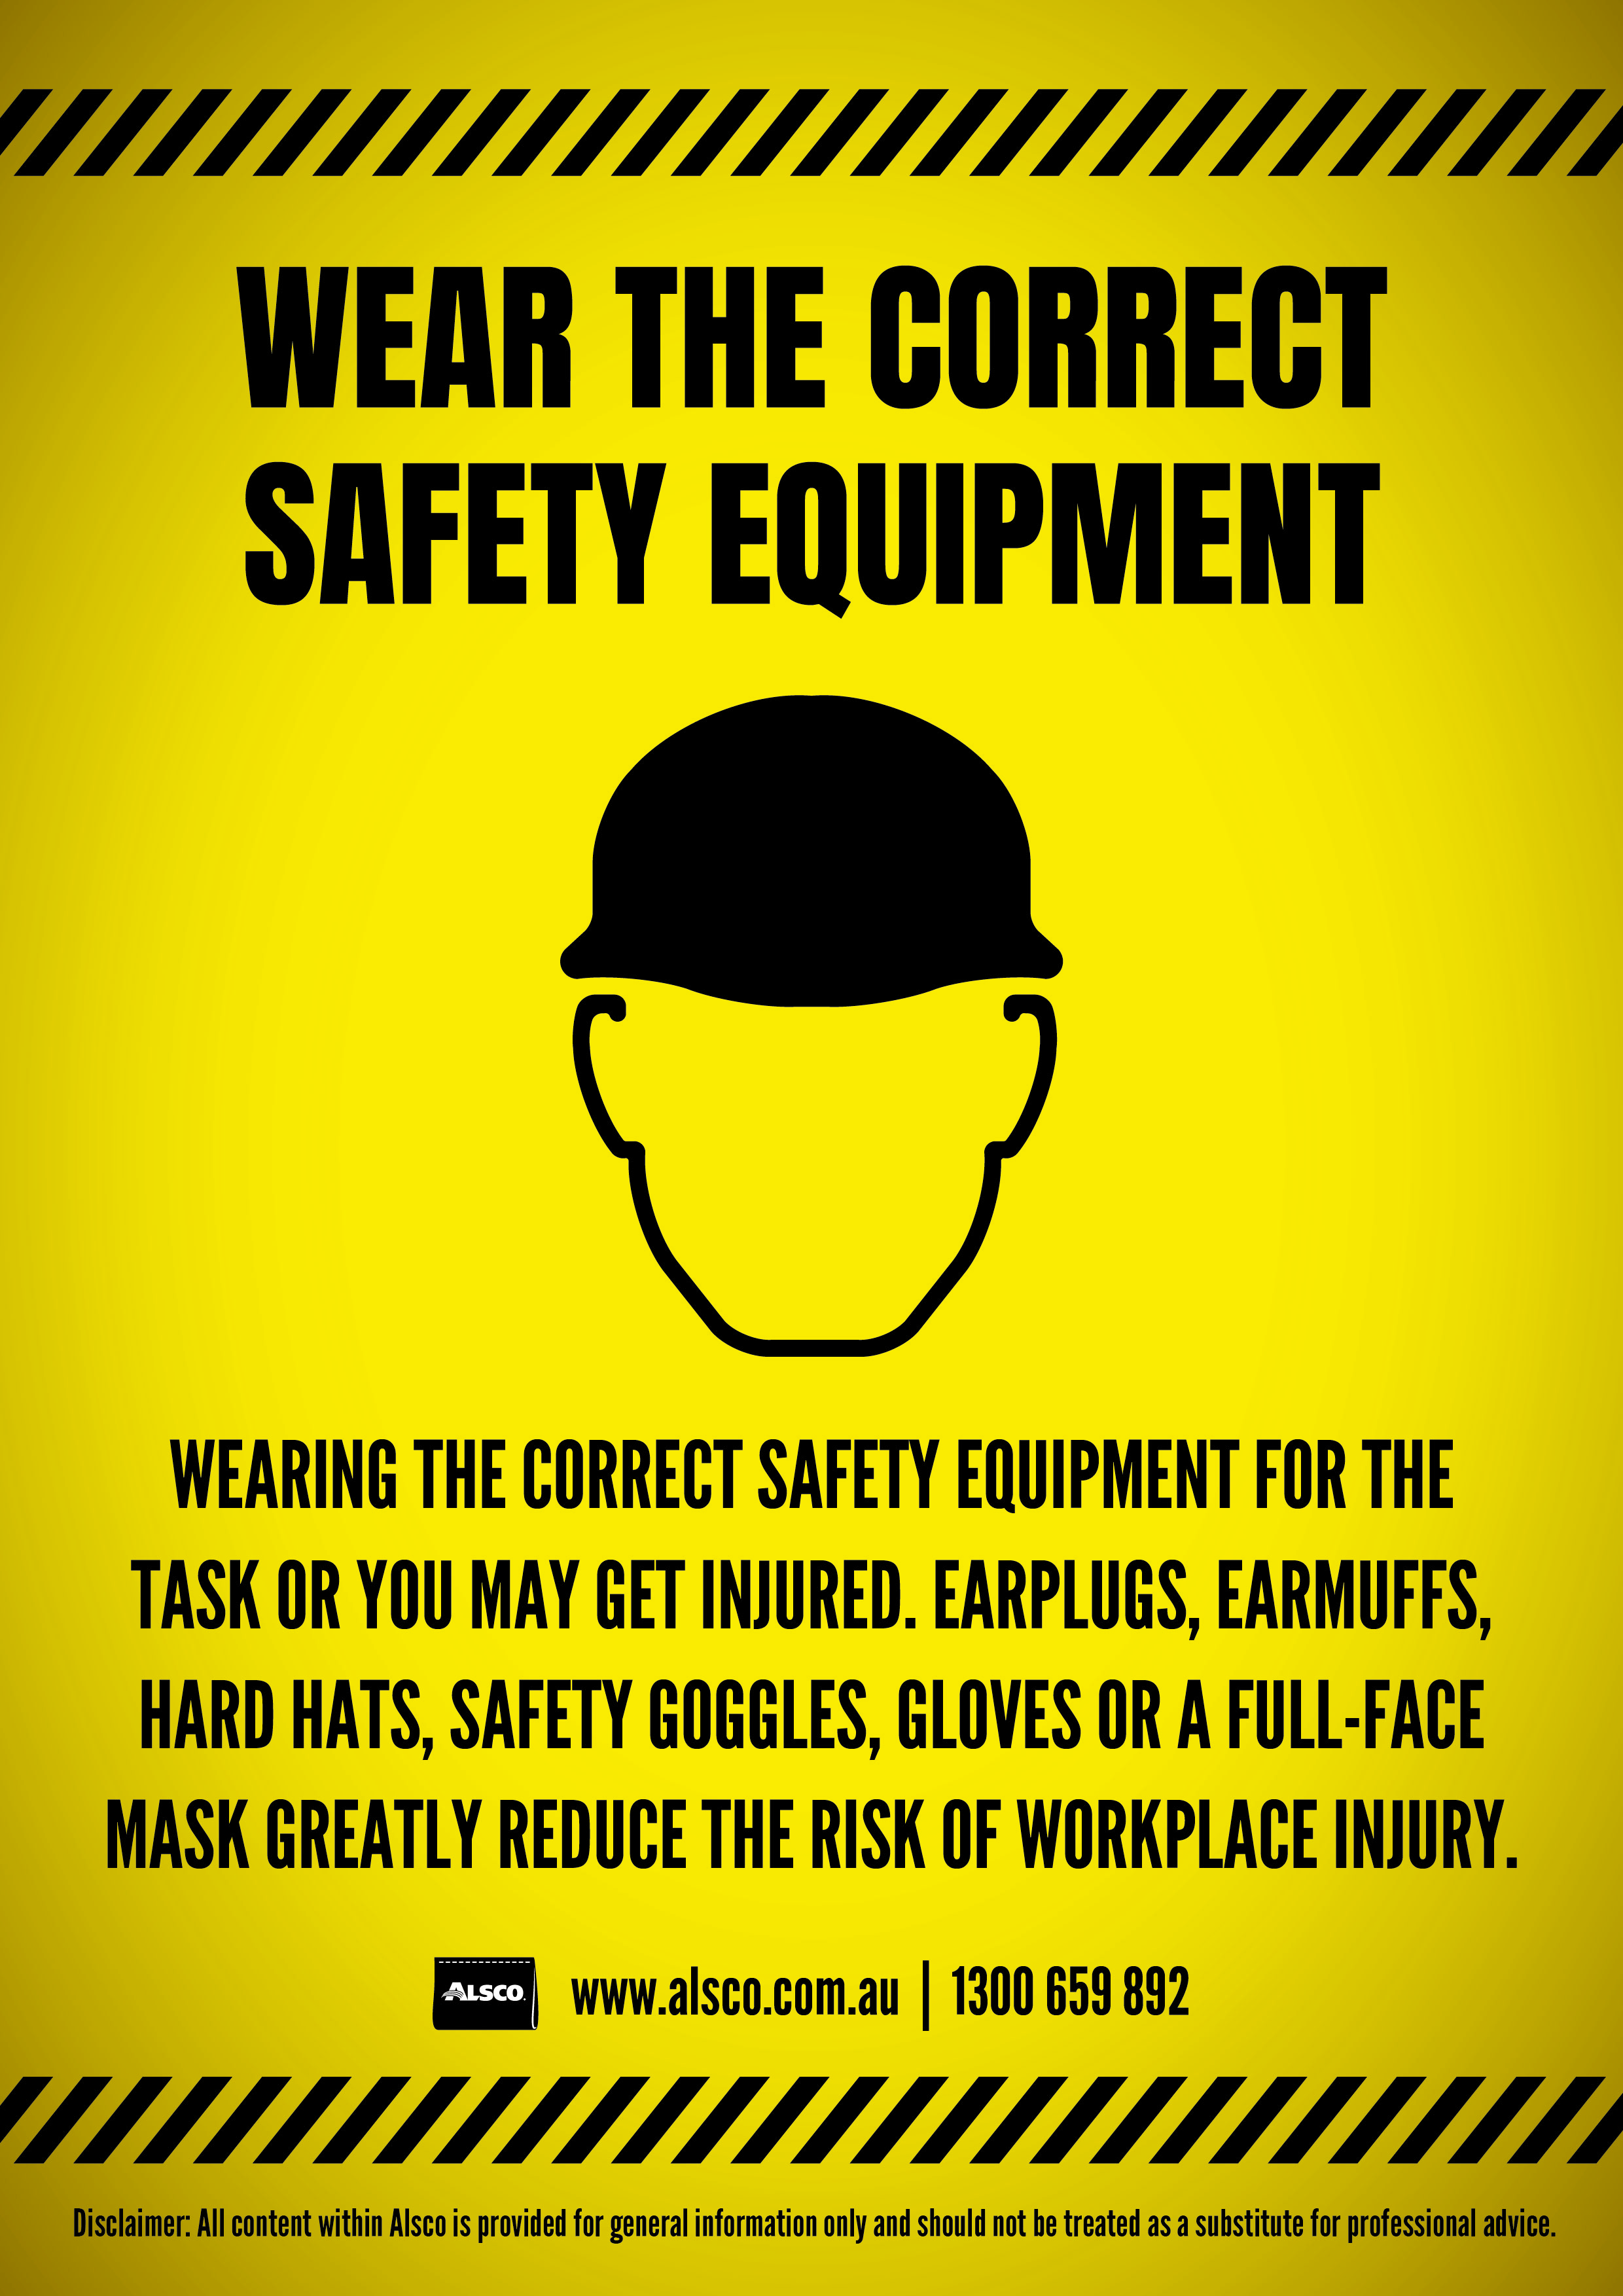 Proper safety equipment is a must